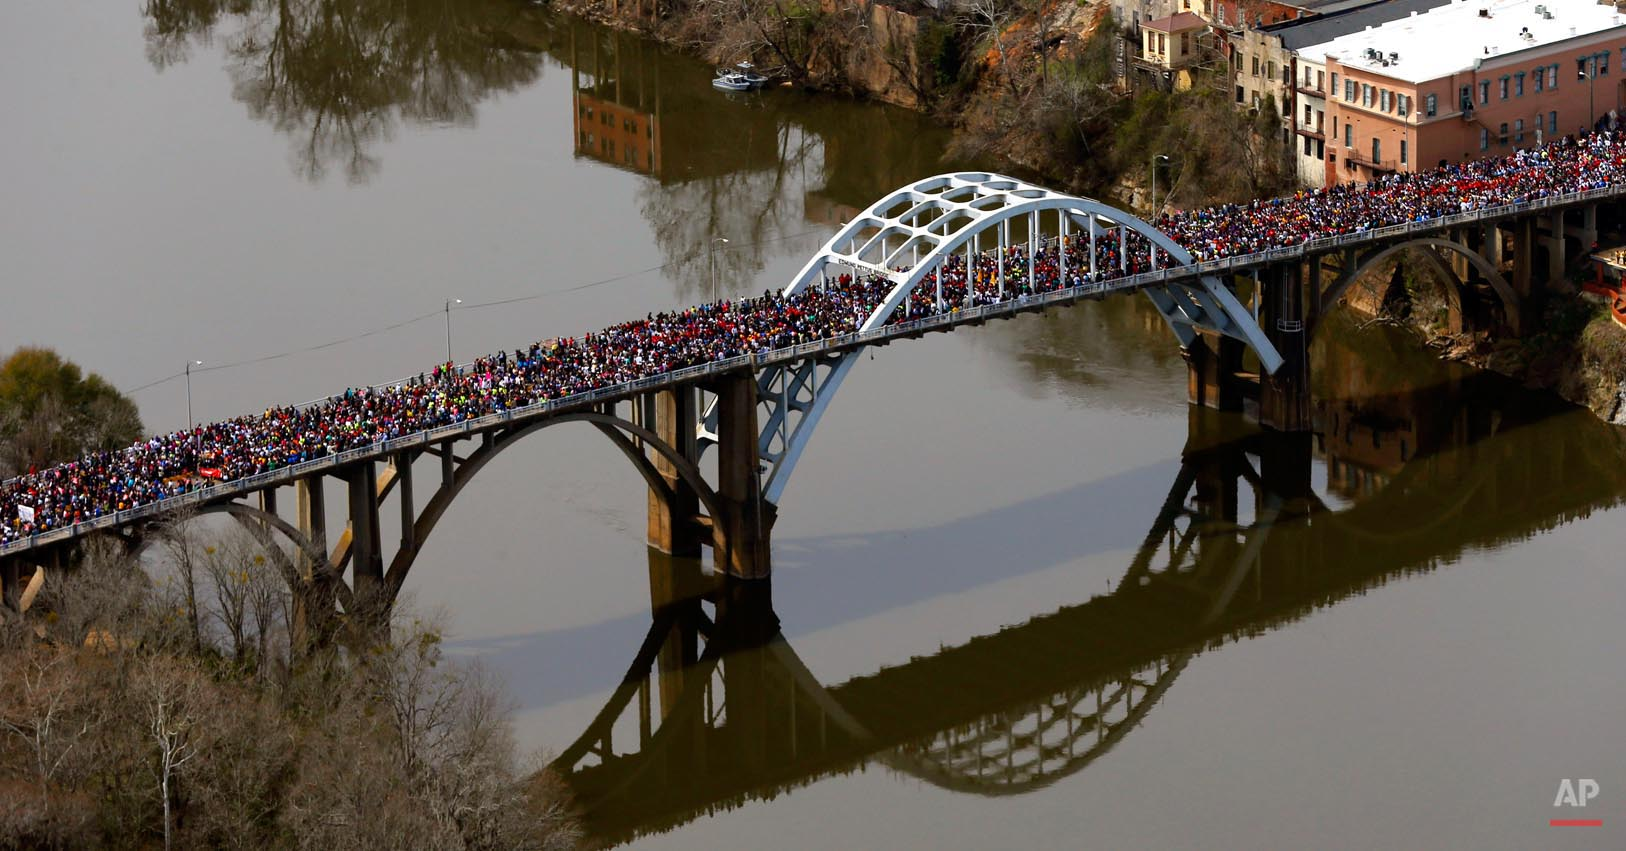 "Crowds of people move in a symbolic walk across the Edmund Pettus Bridge, Sunday, March 8, 2015, in Selma, Ala. It marked the 50th anniversary of ""Bloody Sunday,"" a civil rights march in which protestors were beaten, trampled and tear-gassed by police at the Edmund Pettus Bridge, in Selma. (AP Photo/Butch Dill)"